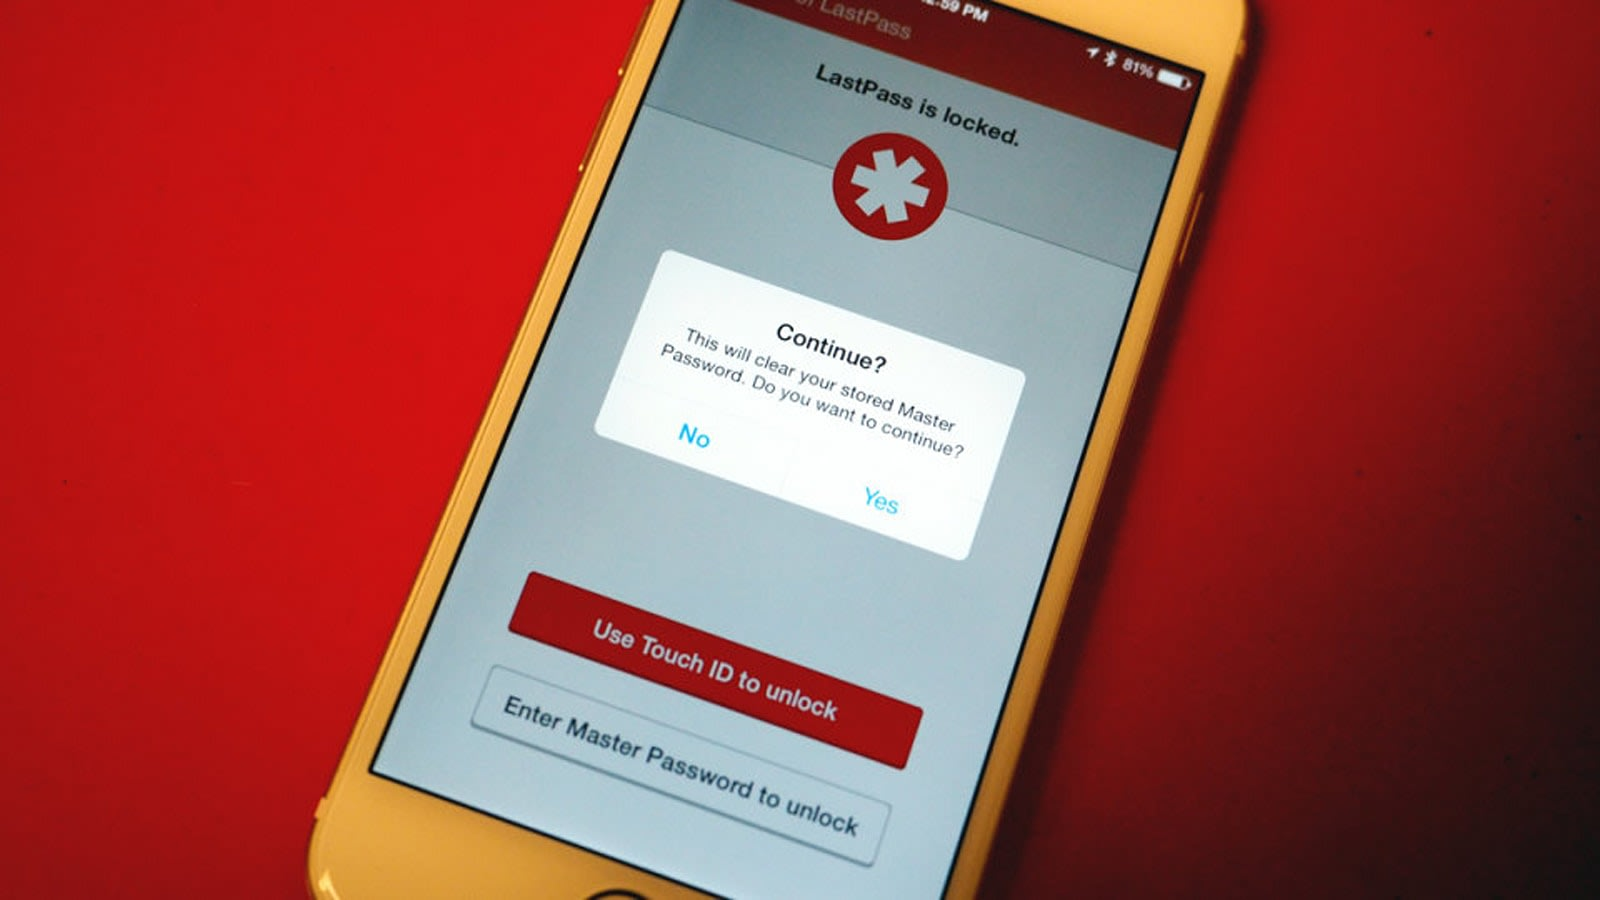 Lastpass addresses two major vulnerabilities found by users